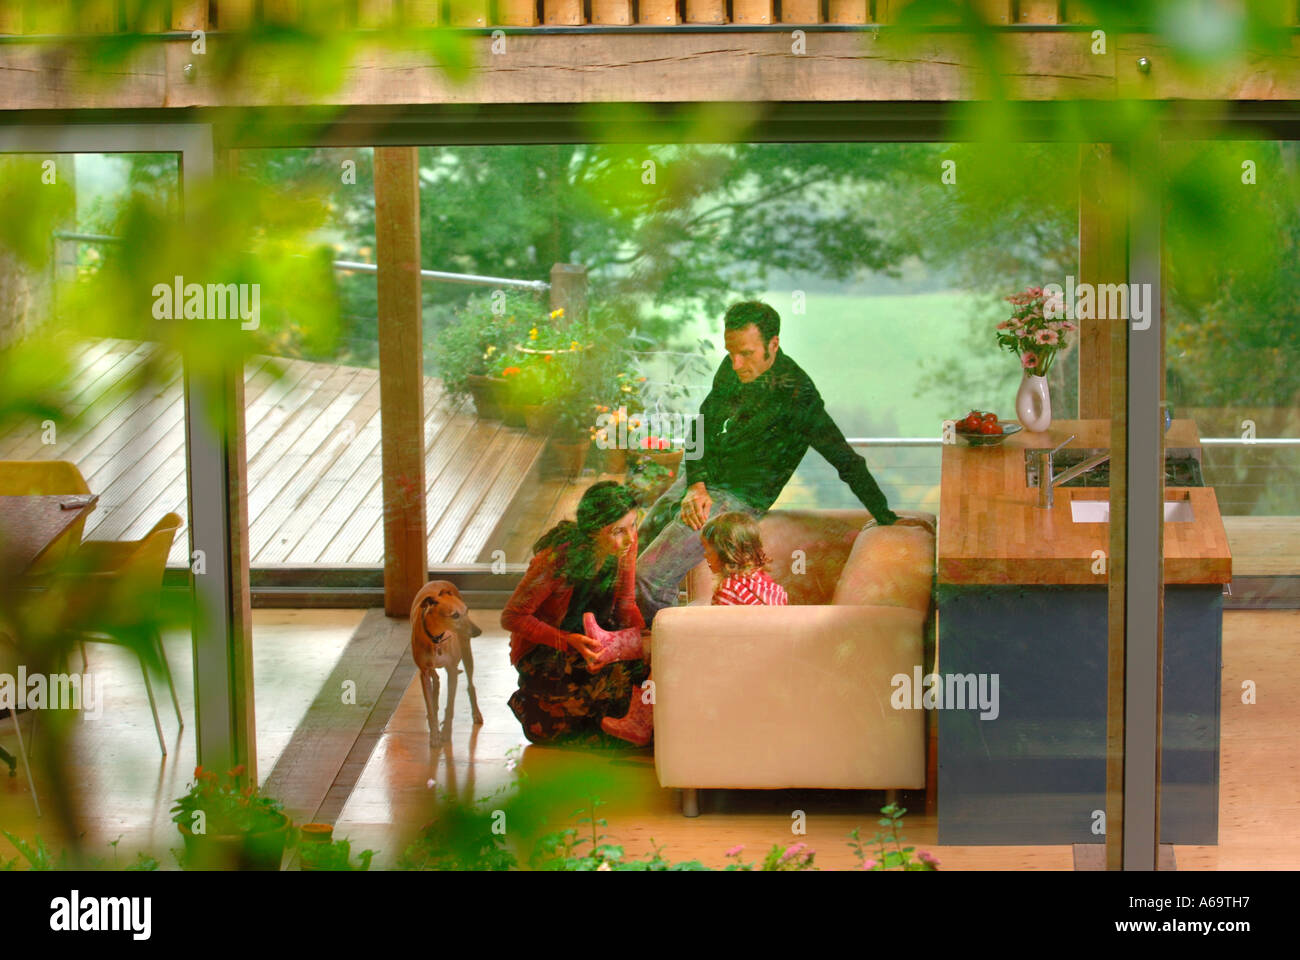 A YOUNG FAMILY IN A MODERN HOUSE WITH LARGE GLASS SLIDING WINDOWS UK - Stock Image